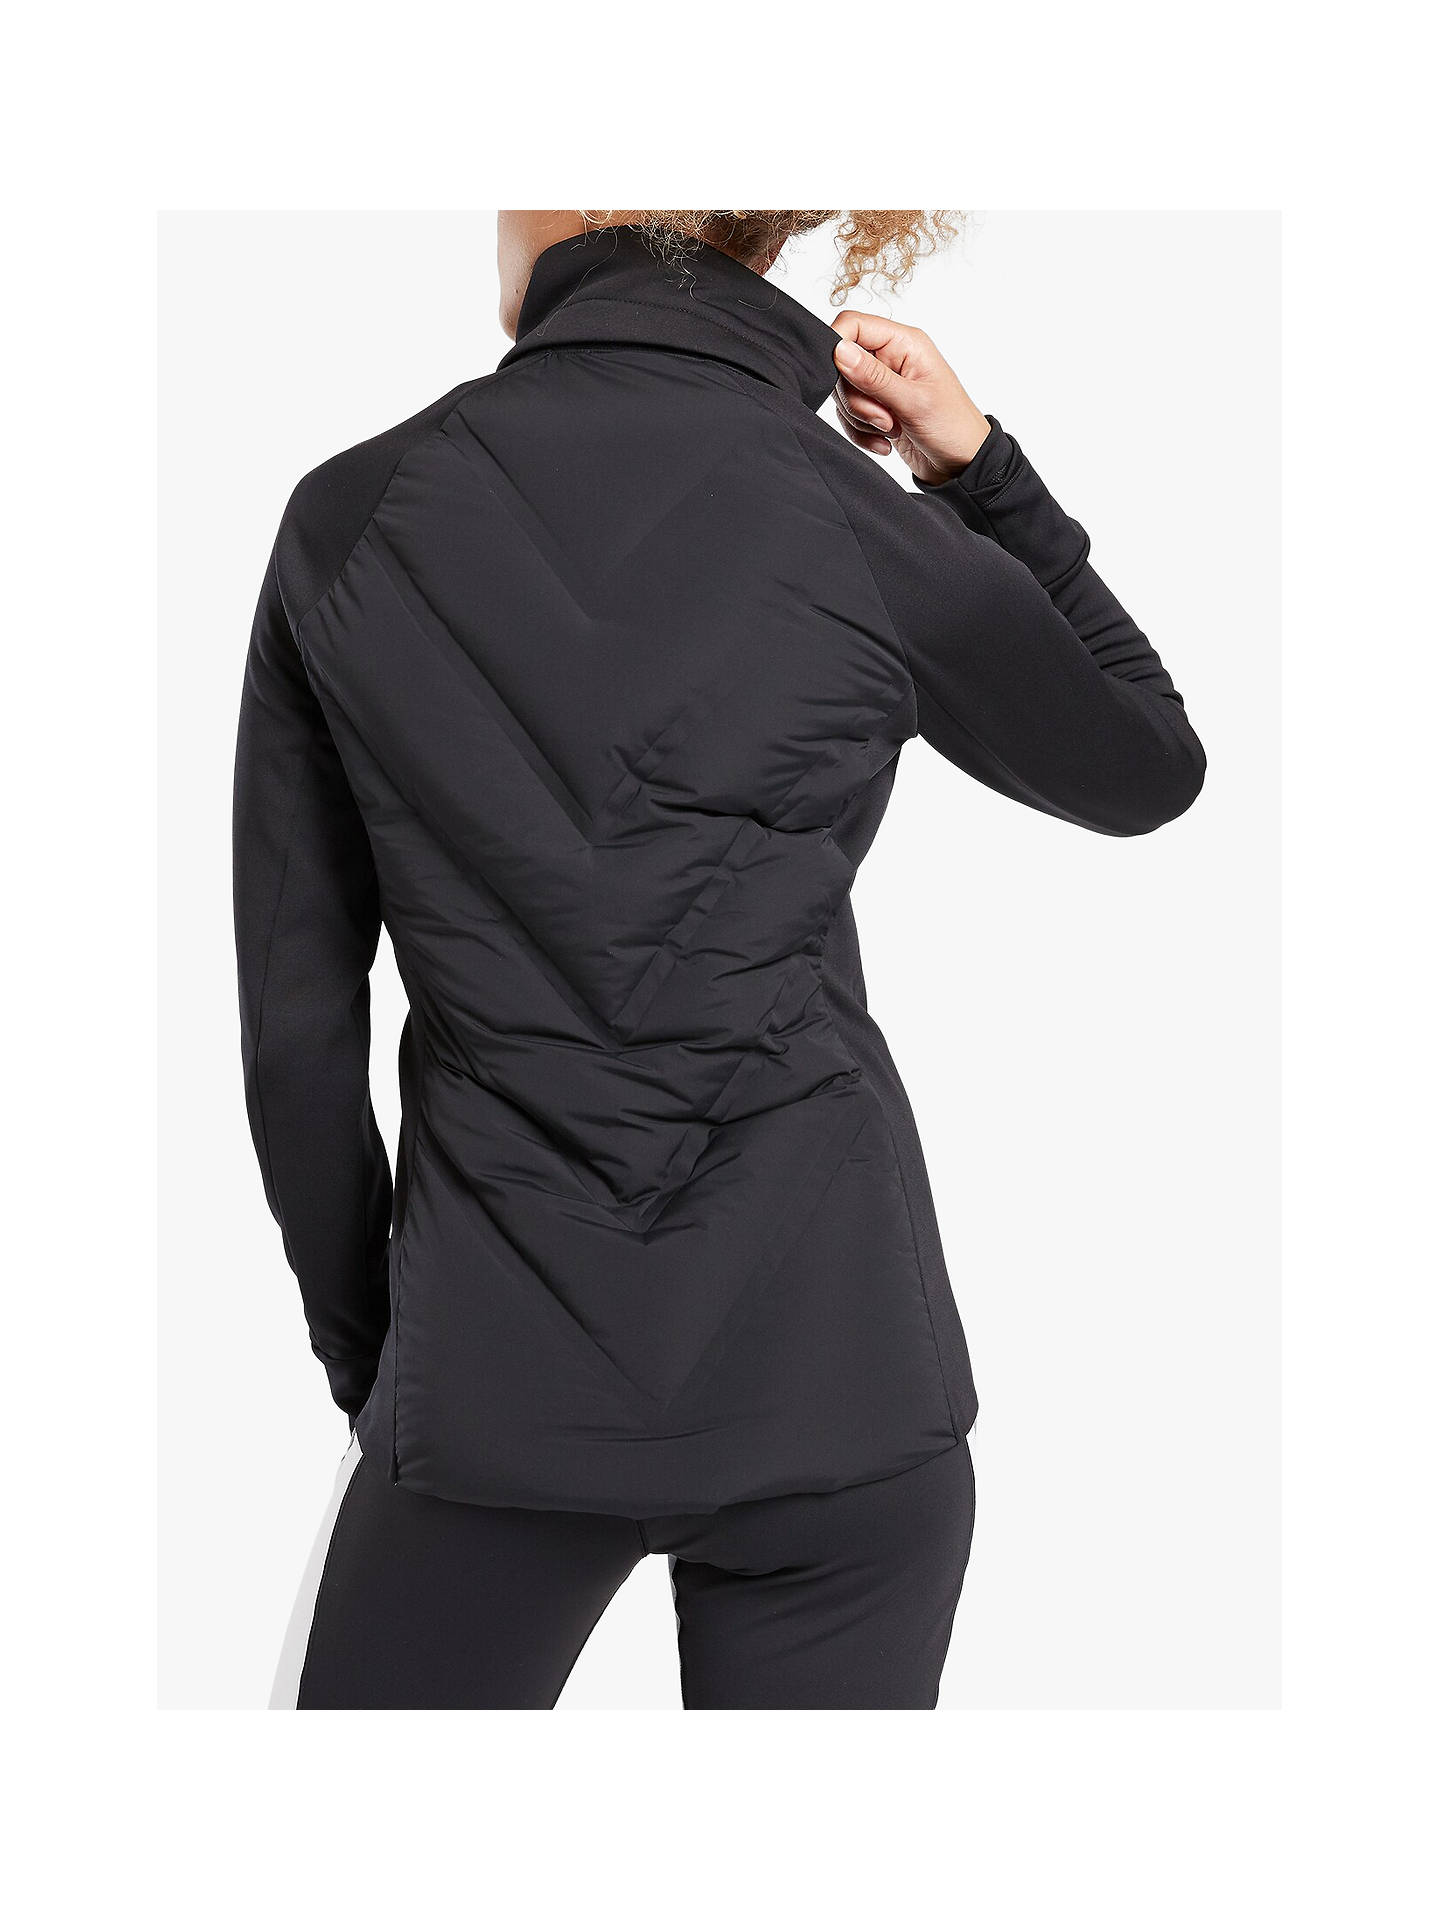 Buy Athleta Inlet Jacket, Black, XS Online at johnlewis.com